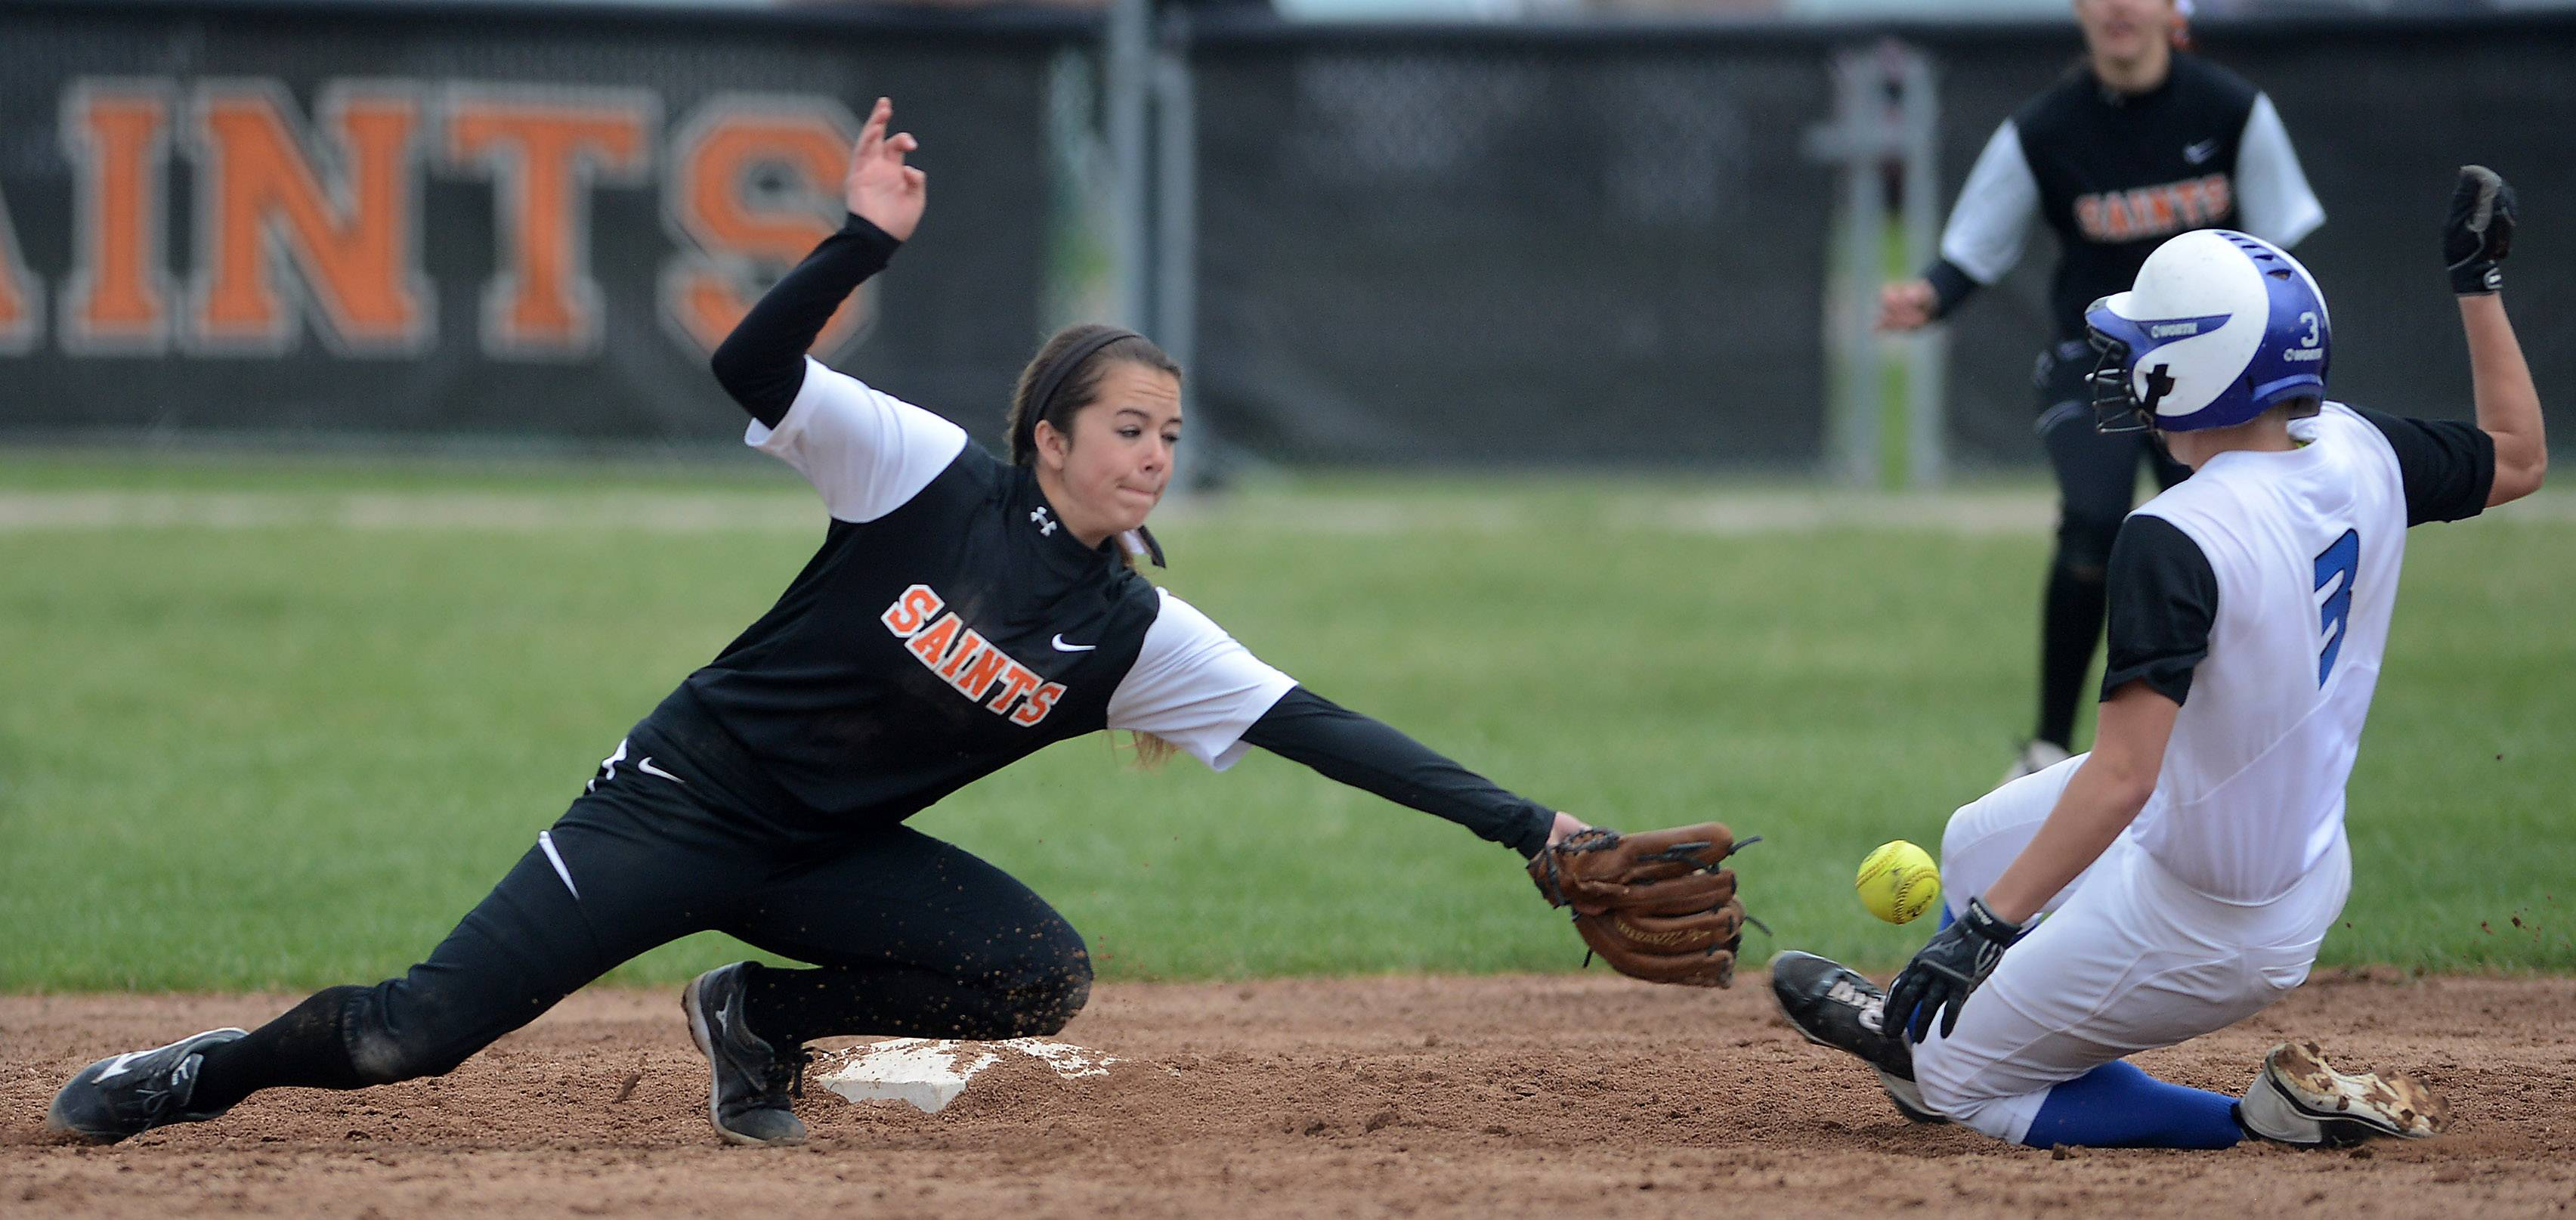 St. Charles North's Andrea Beal slides safely in to second as St. Charles East's Olivia Cheatham takes the late throw during Tuesday's game in St. Charles.